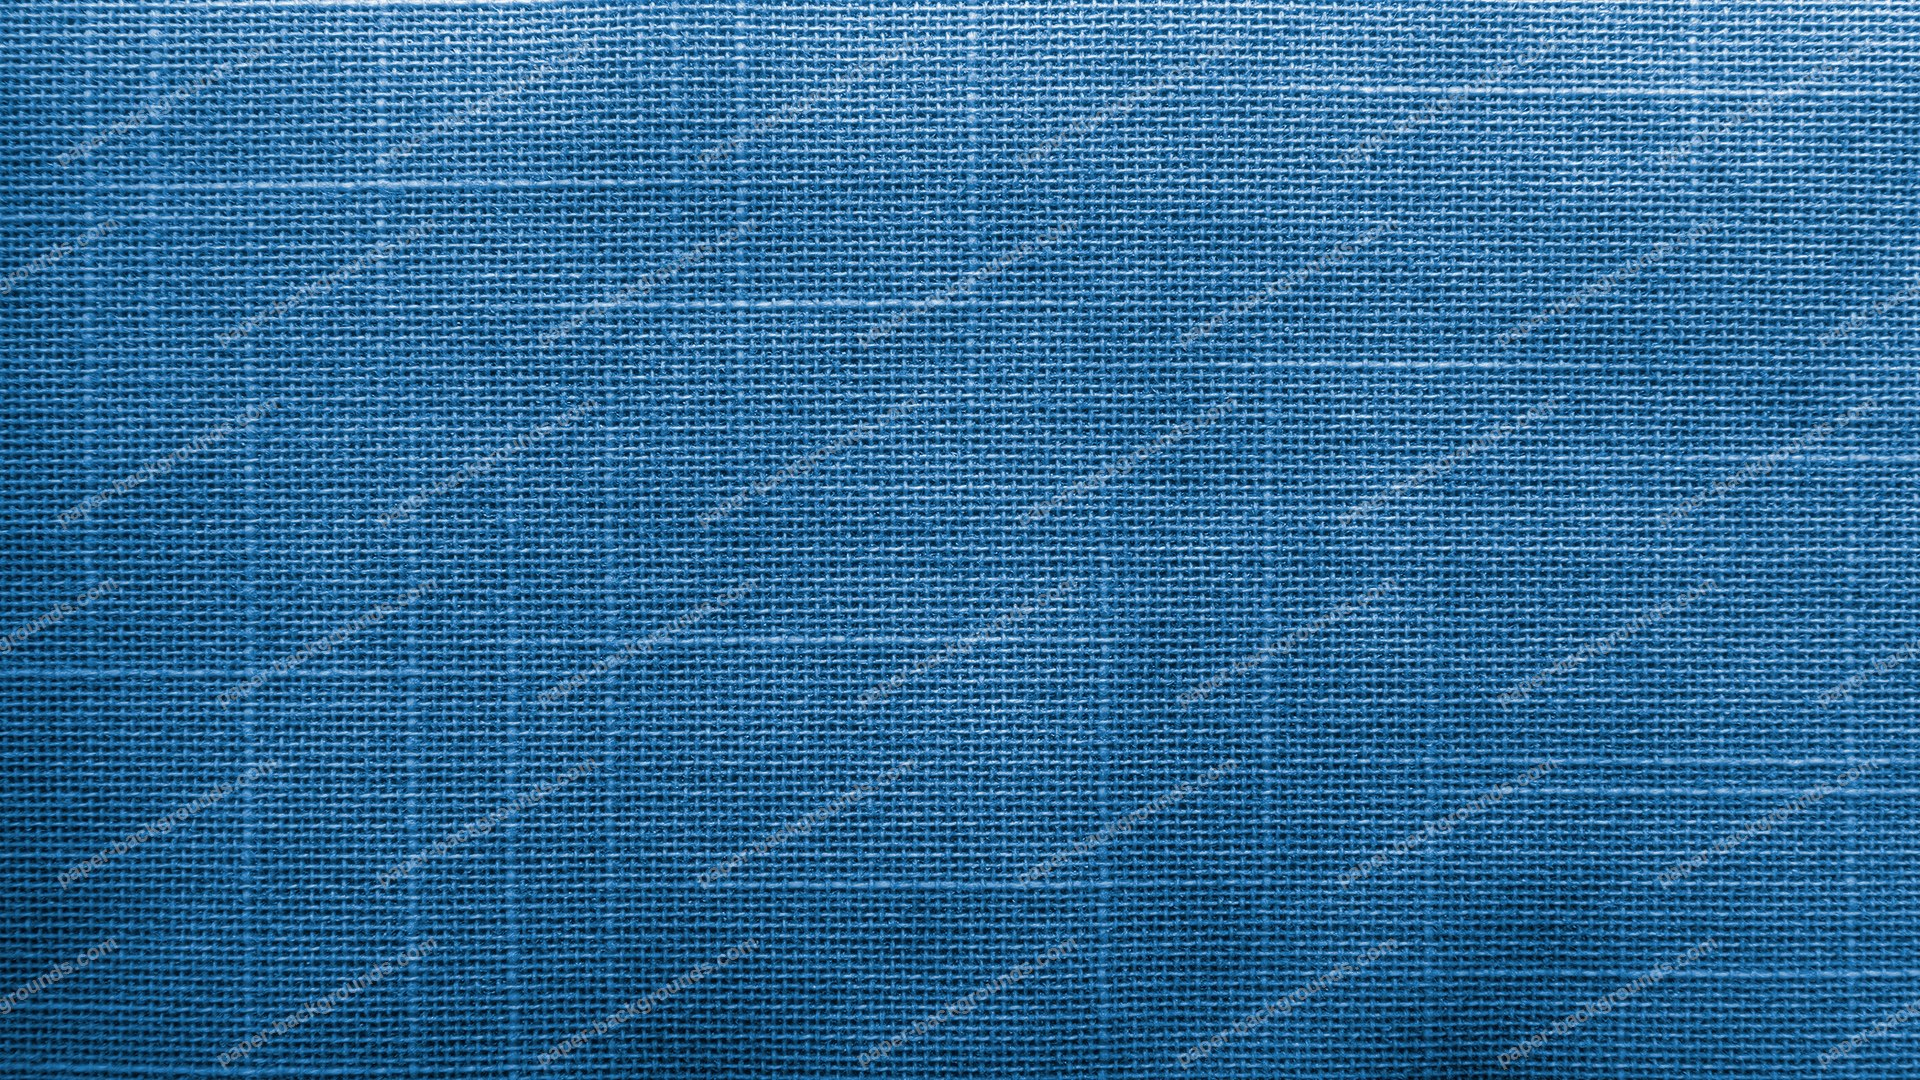 Blue Vintage Canvas Fabric Texture HD 1920 x 1080p